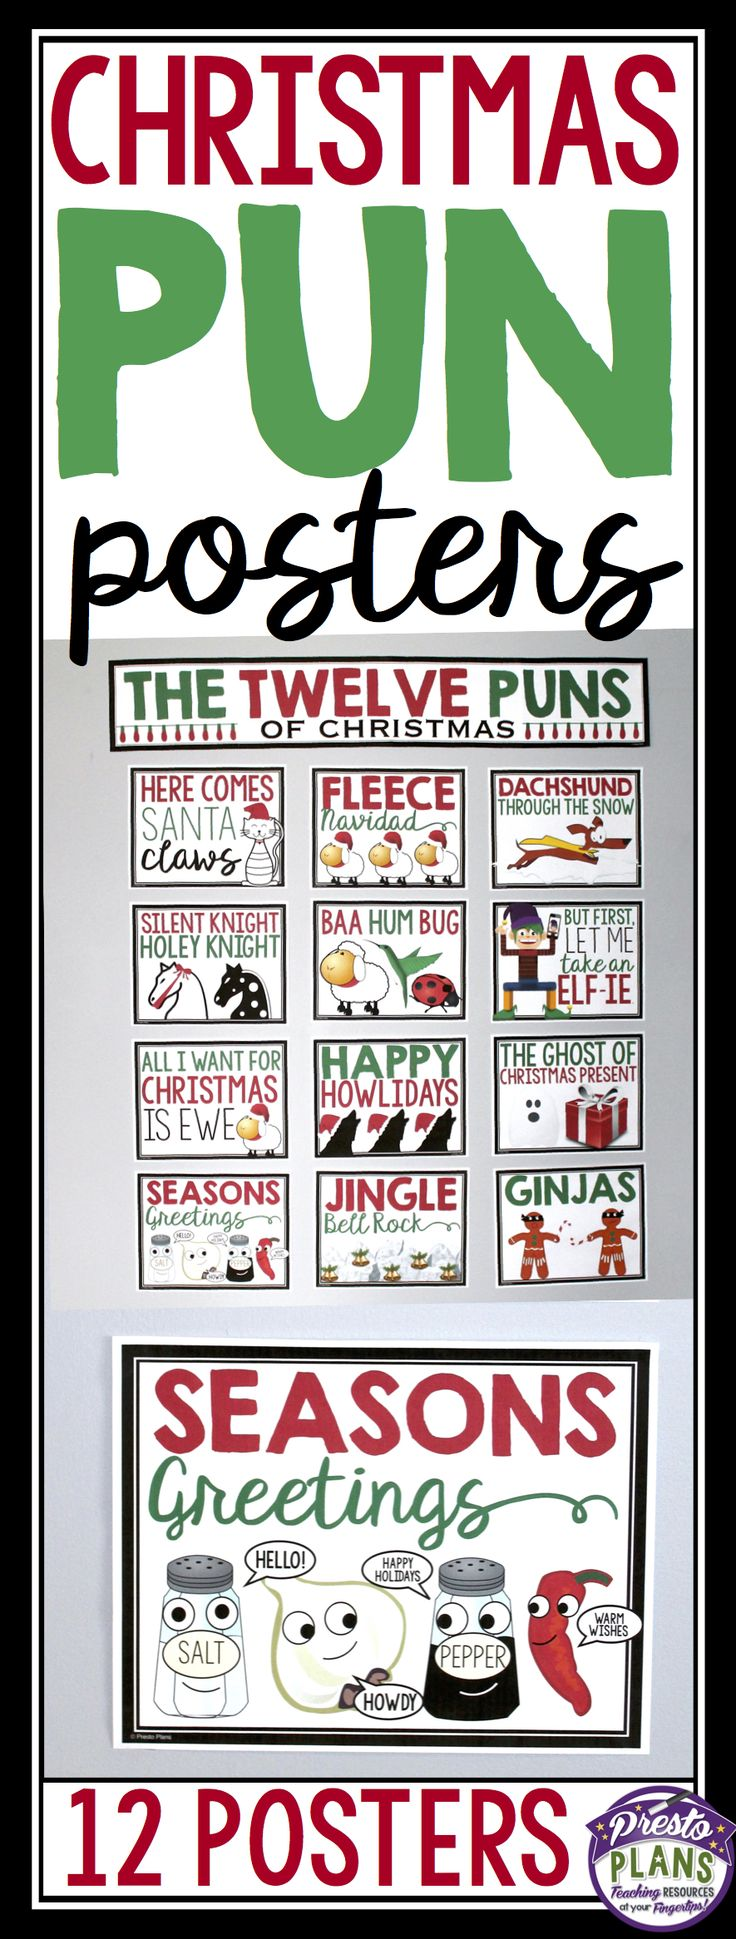 Best Funny Classroom Posters Ideas On Pinterest Funny - Seeing 23 hilarious street posters will make day